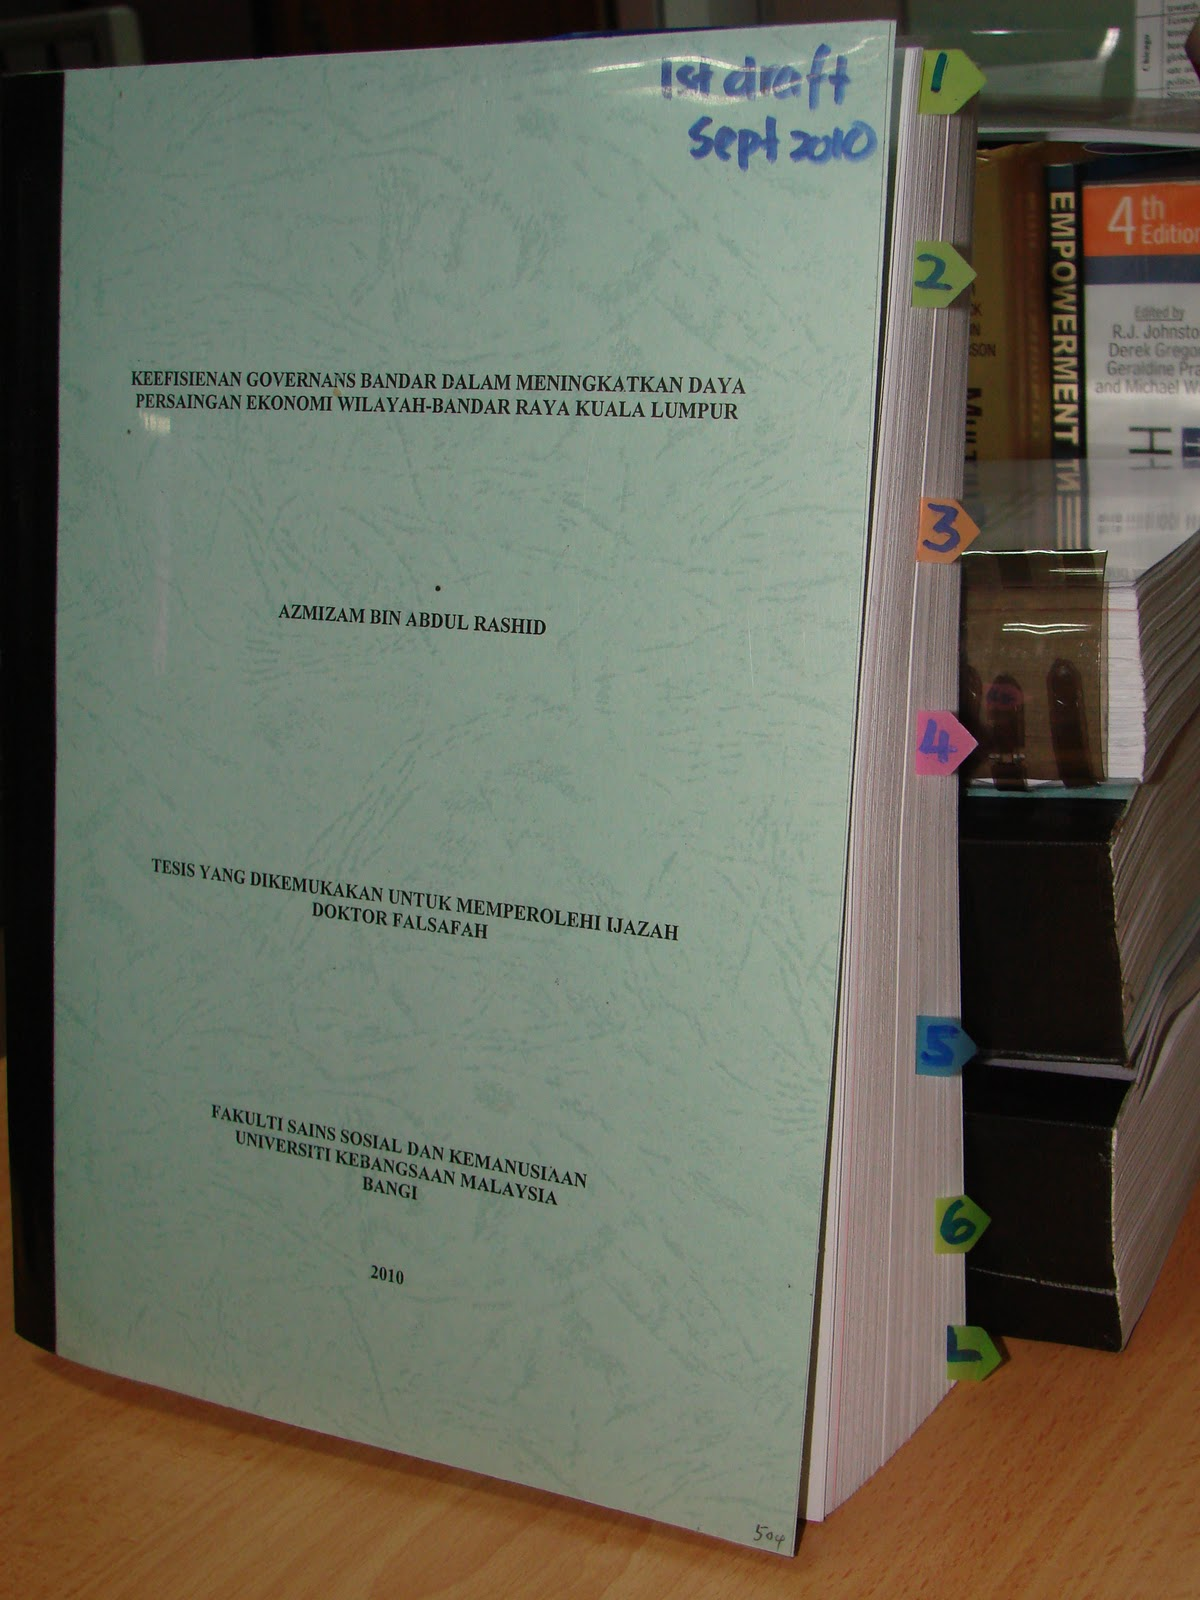 phd thesis in urban and regional planning Doctor of philosophy in planning 1 introduction the department of urban and regional planning offers a doctor of philosophy (phd)  thesis.